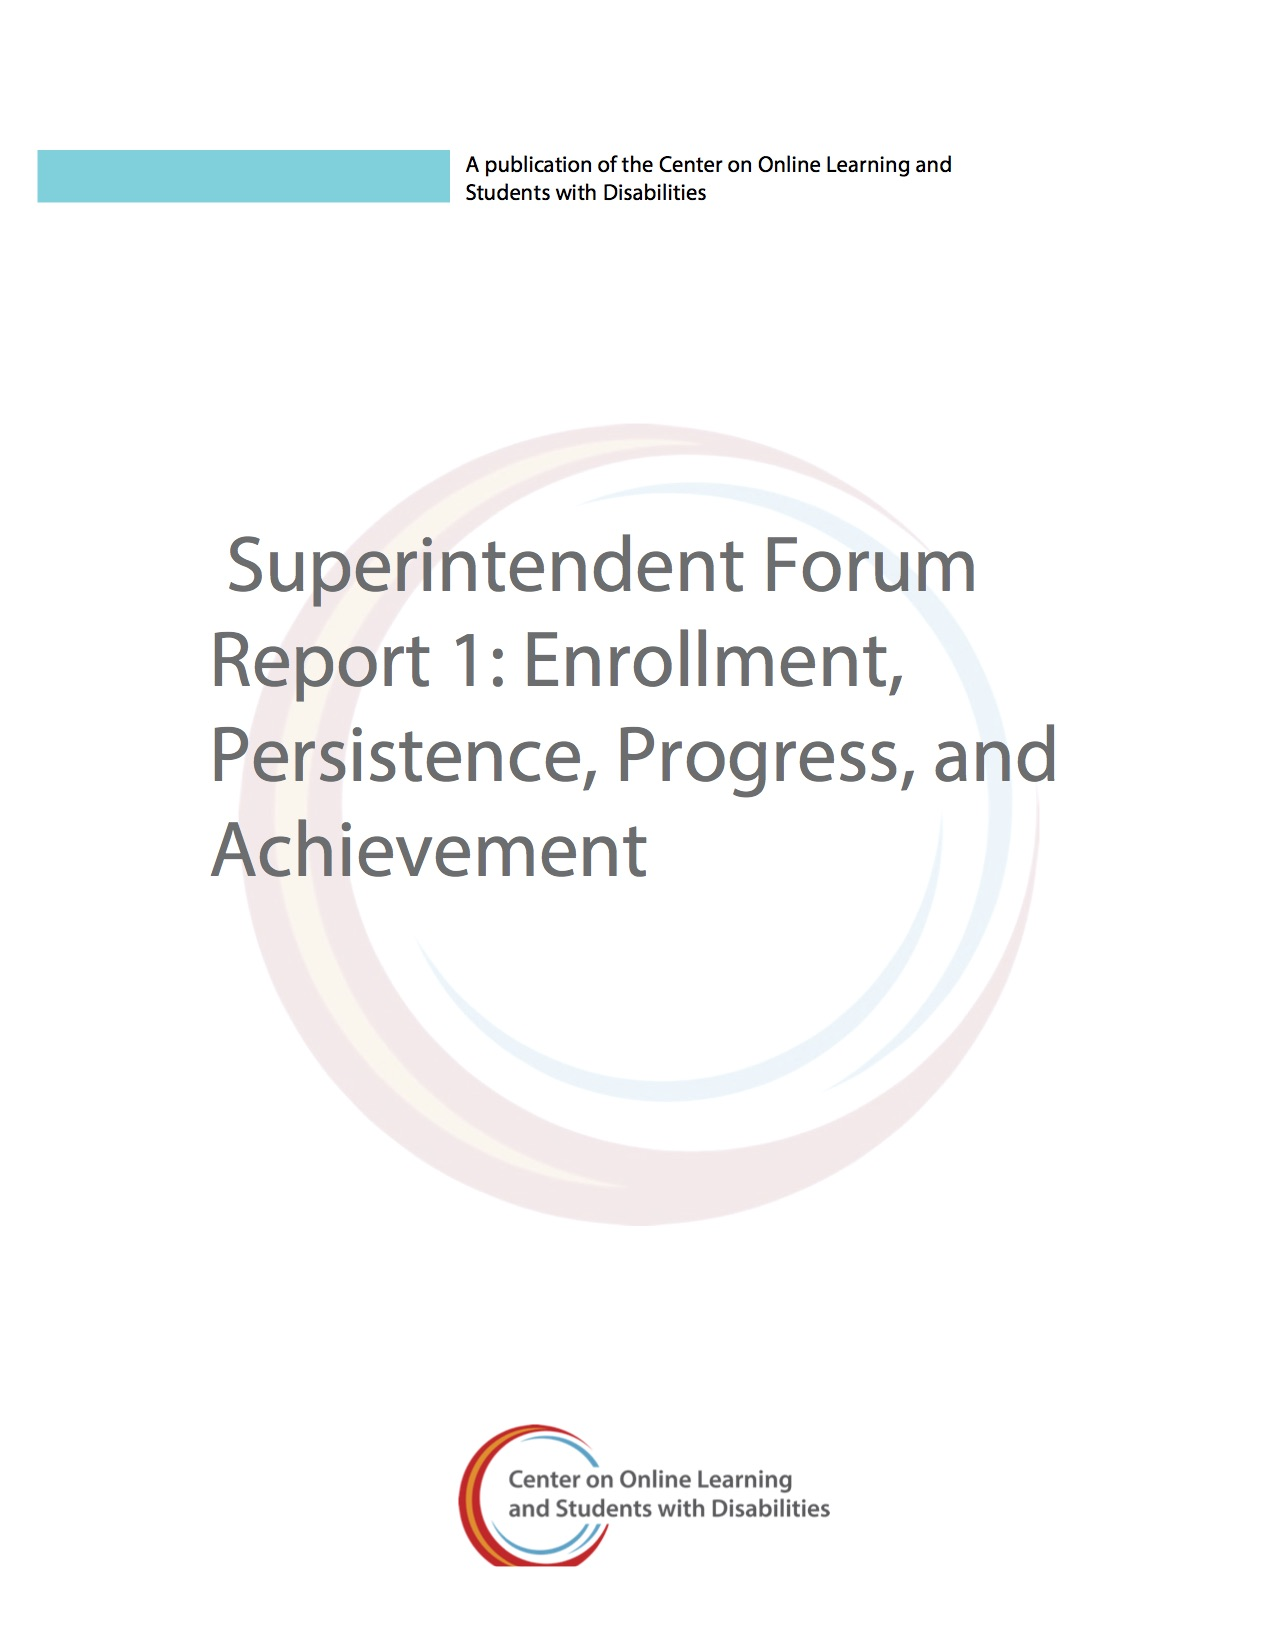 Superintendent Forum Report 1: Enrollment, Persistence, Progress, And Achievement